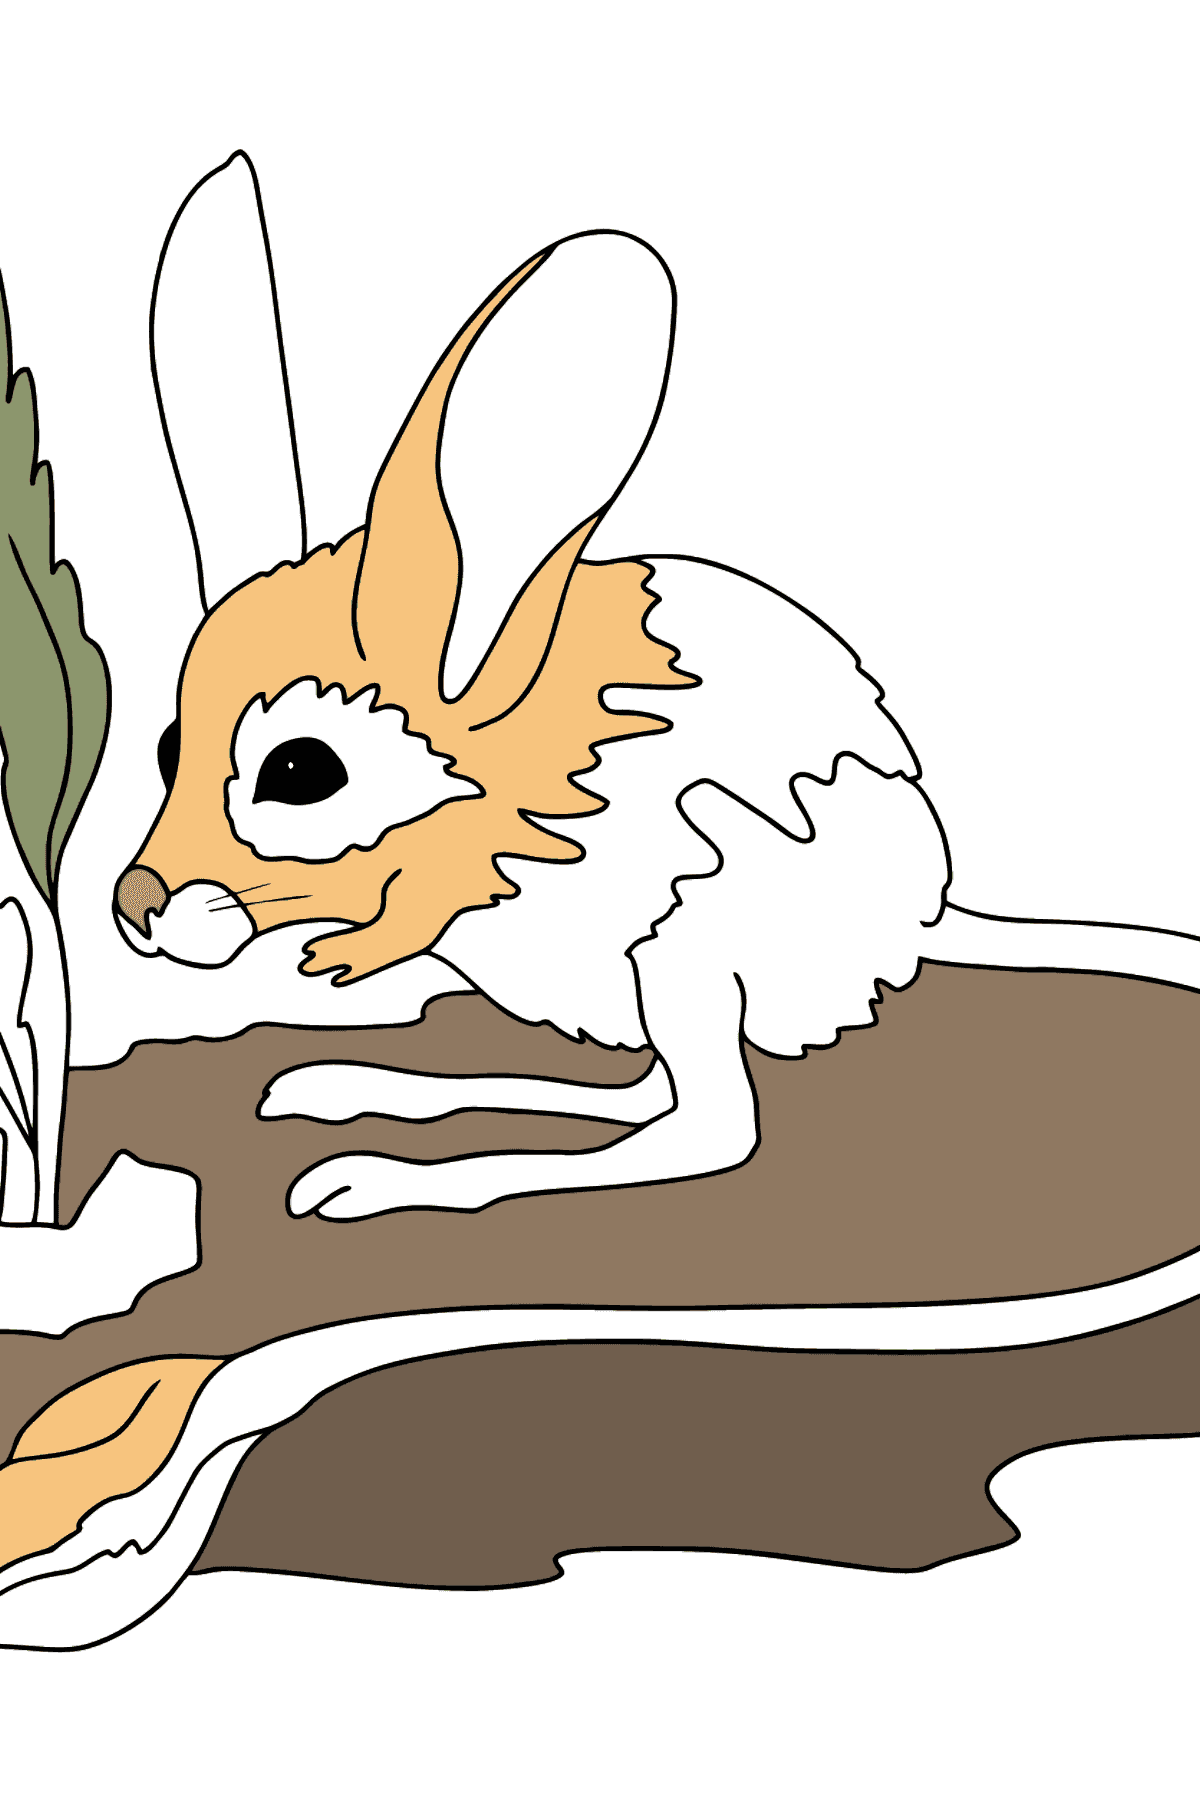 Coloring Page - A Jerboa with Long Legs and a Long Tail - Coloring Pages for Kids